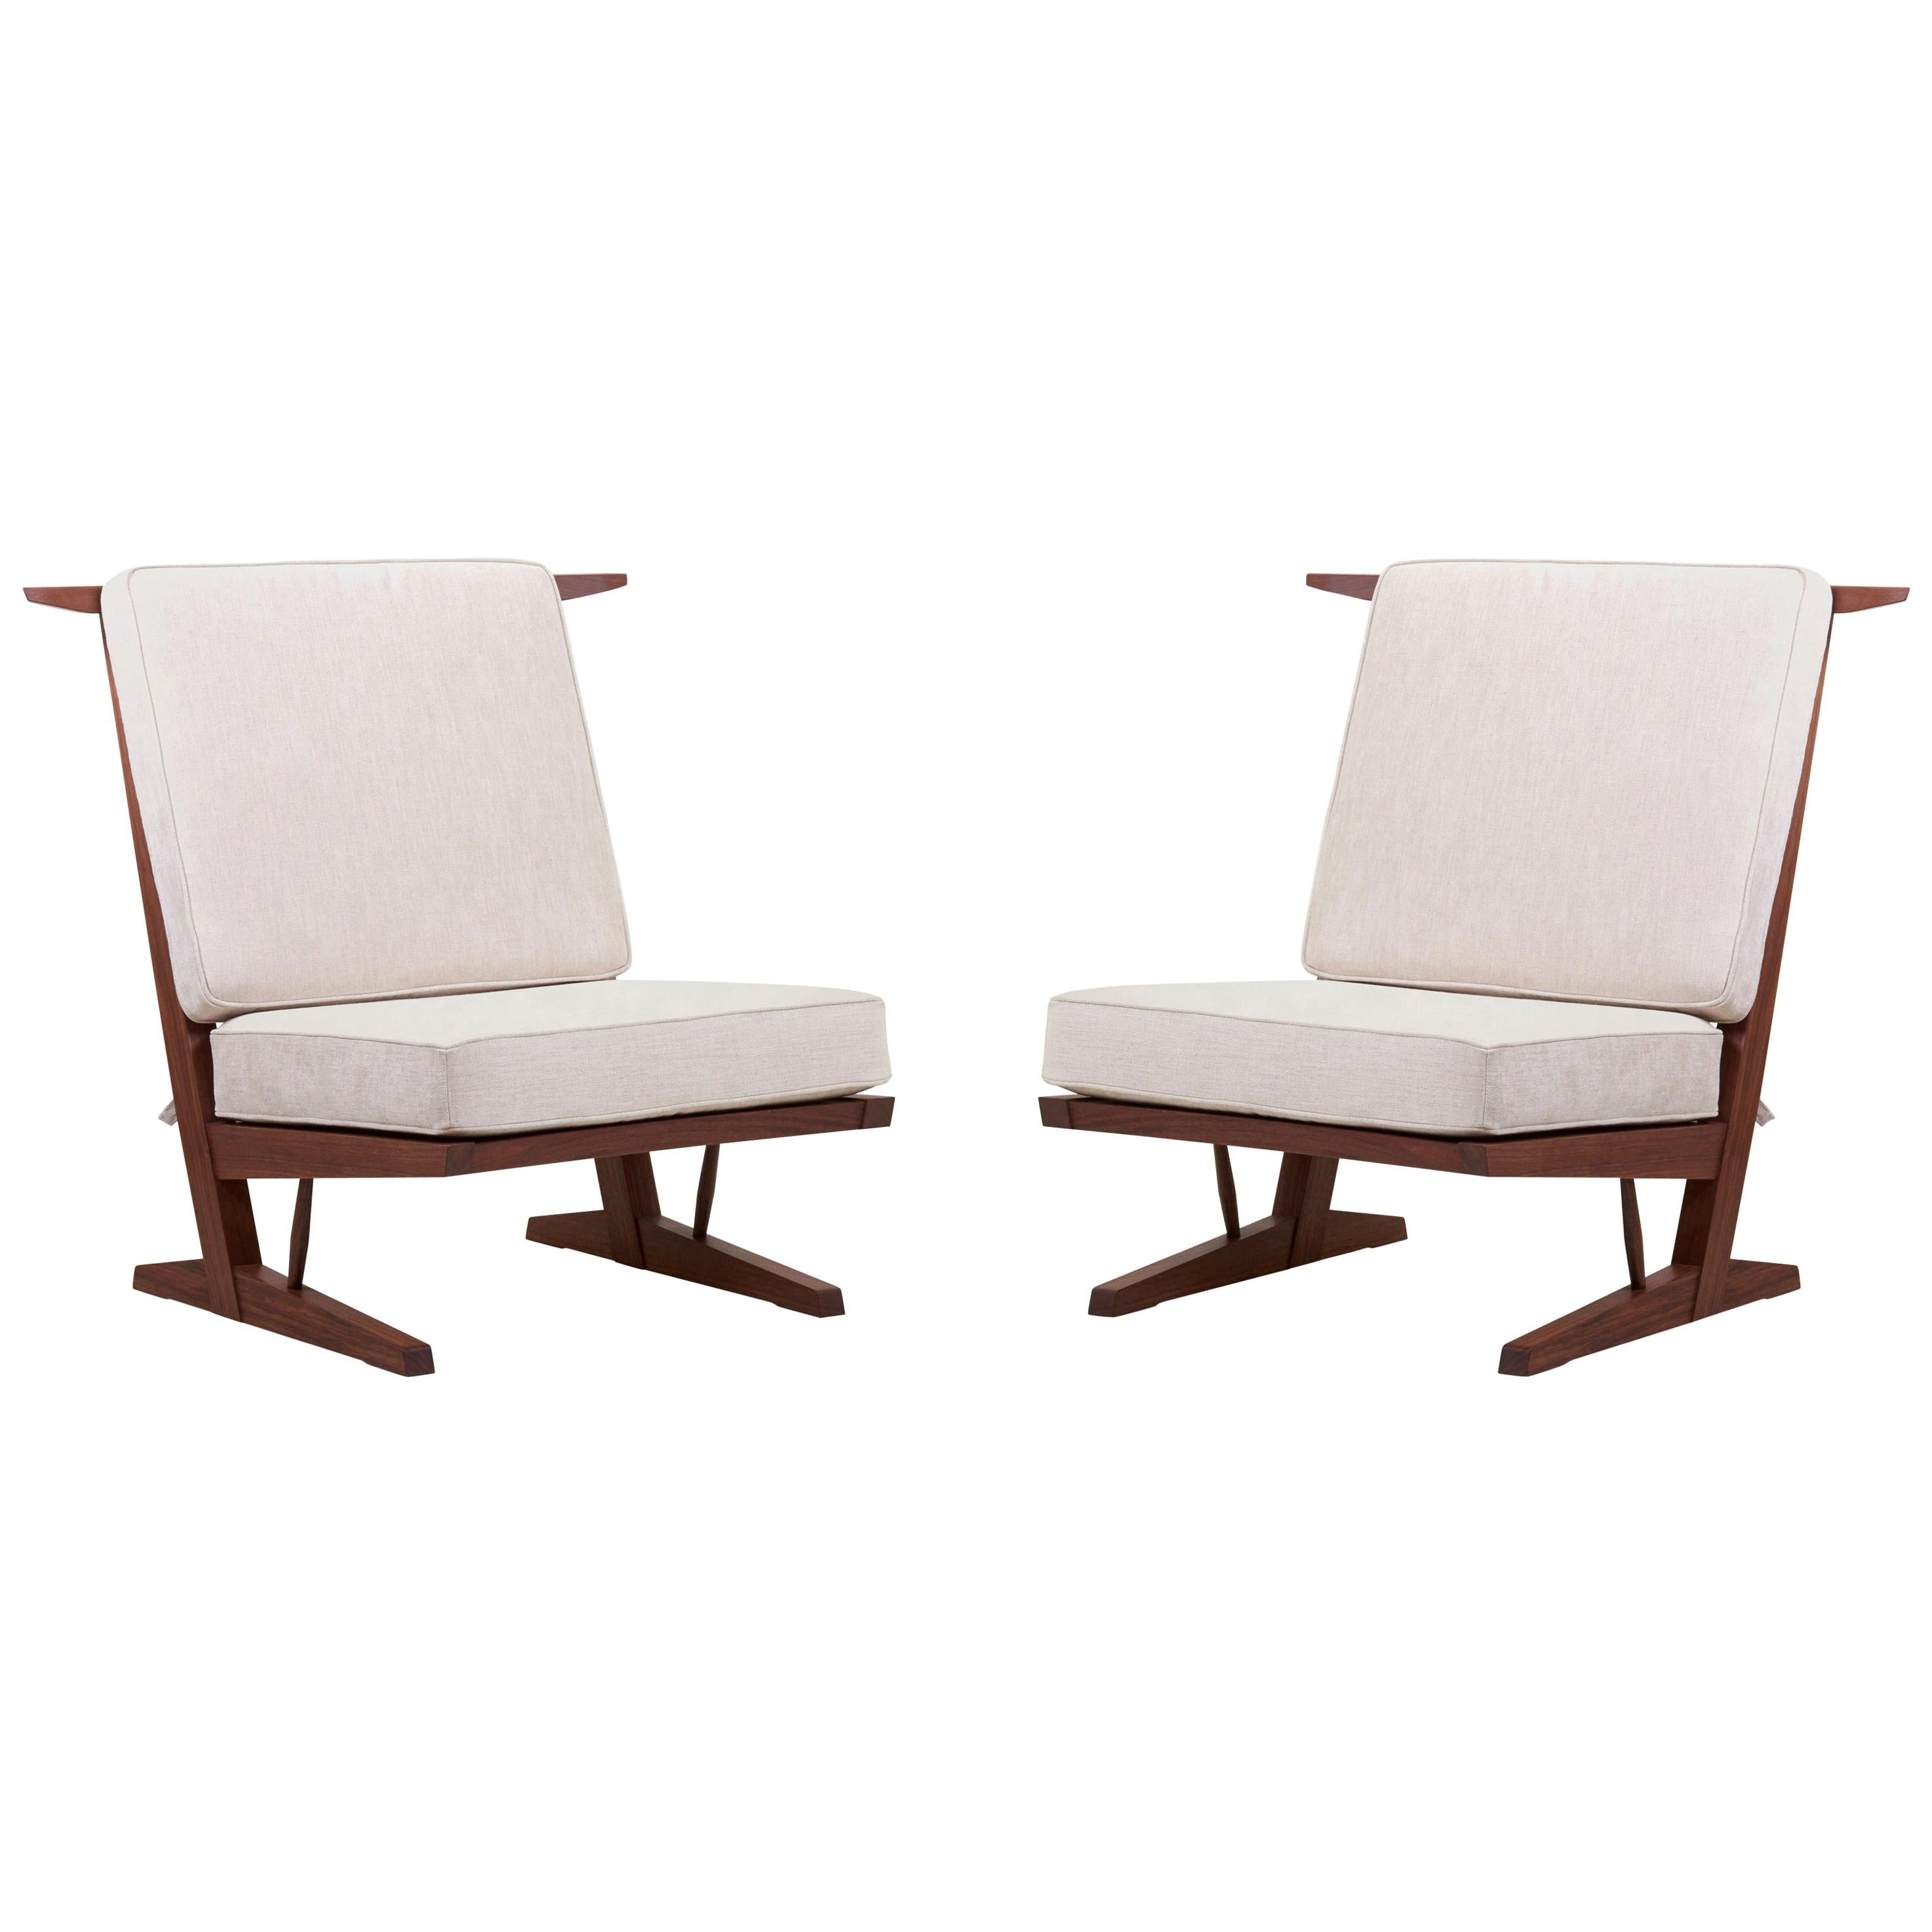 Pair of George Nakashima Conoid Lounge Chairs by Nakashima Woodworkers, US 2021